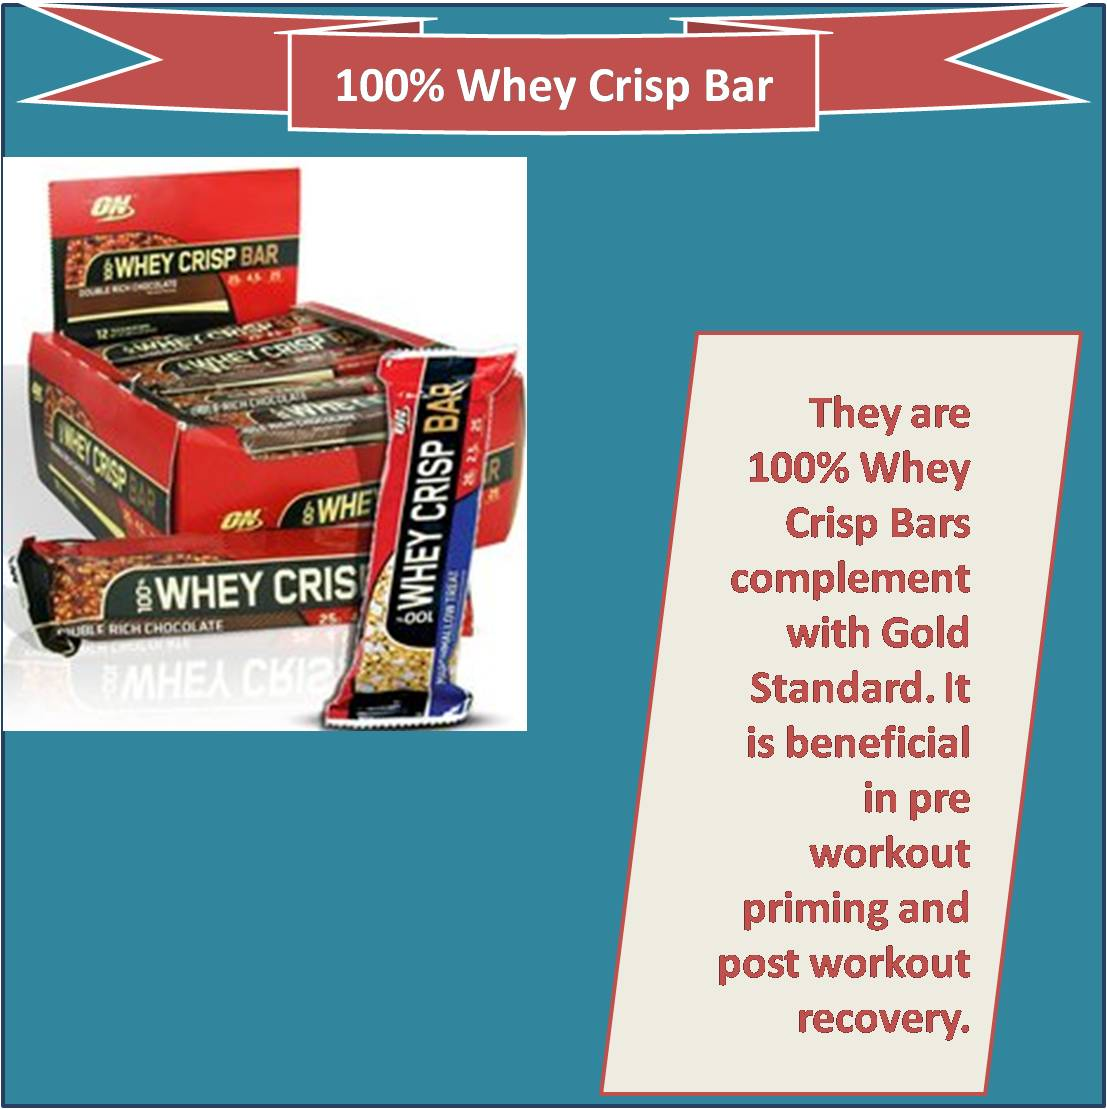 100 percent Whey Crisp Bar